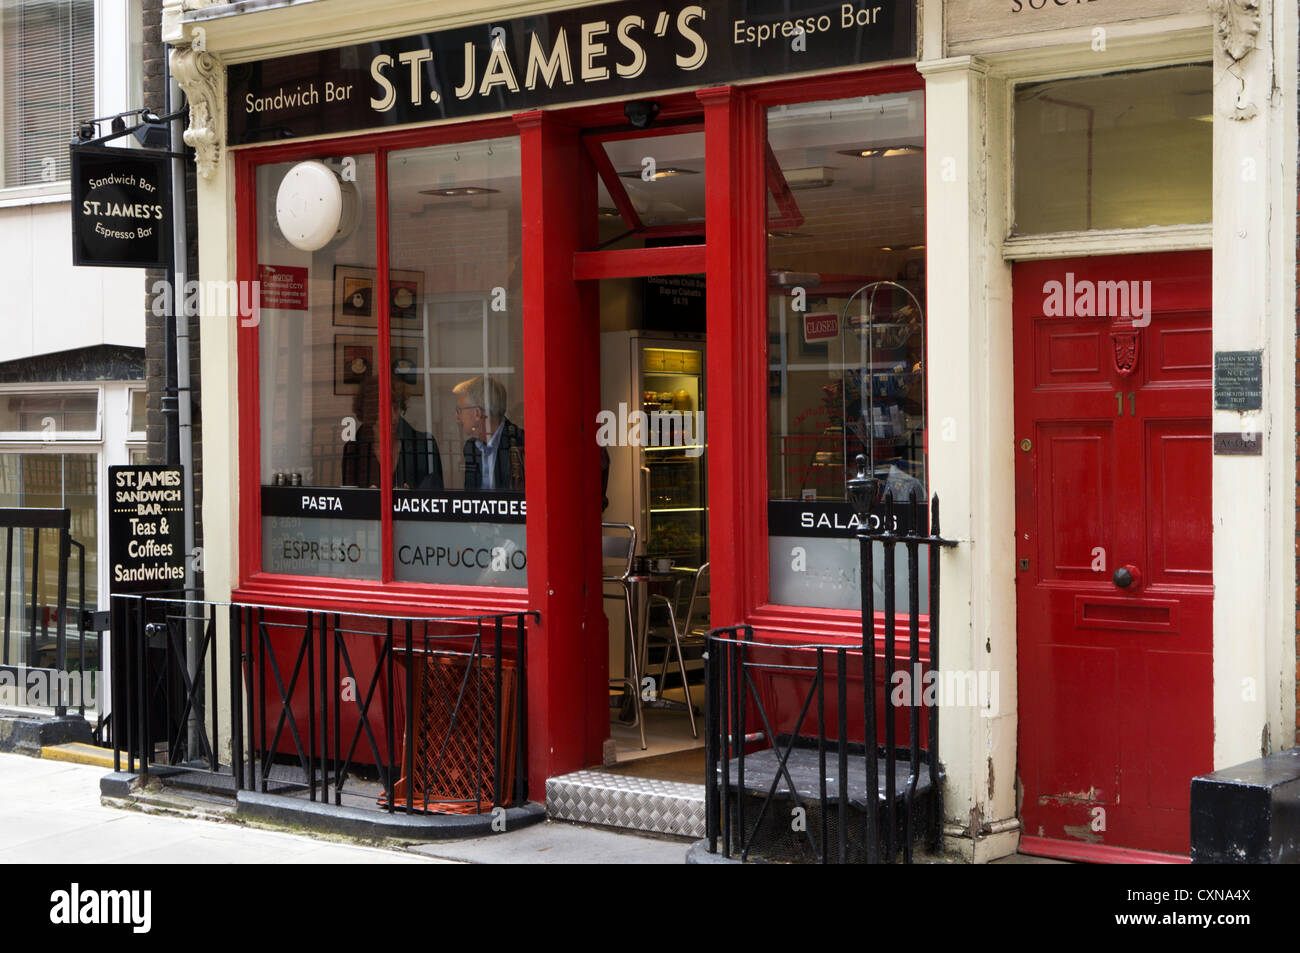 St James's Espresso Bar - un petit café dans le centre de Londres. Photo Stock